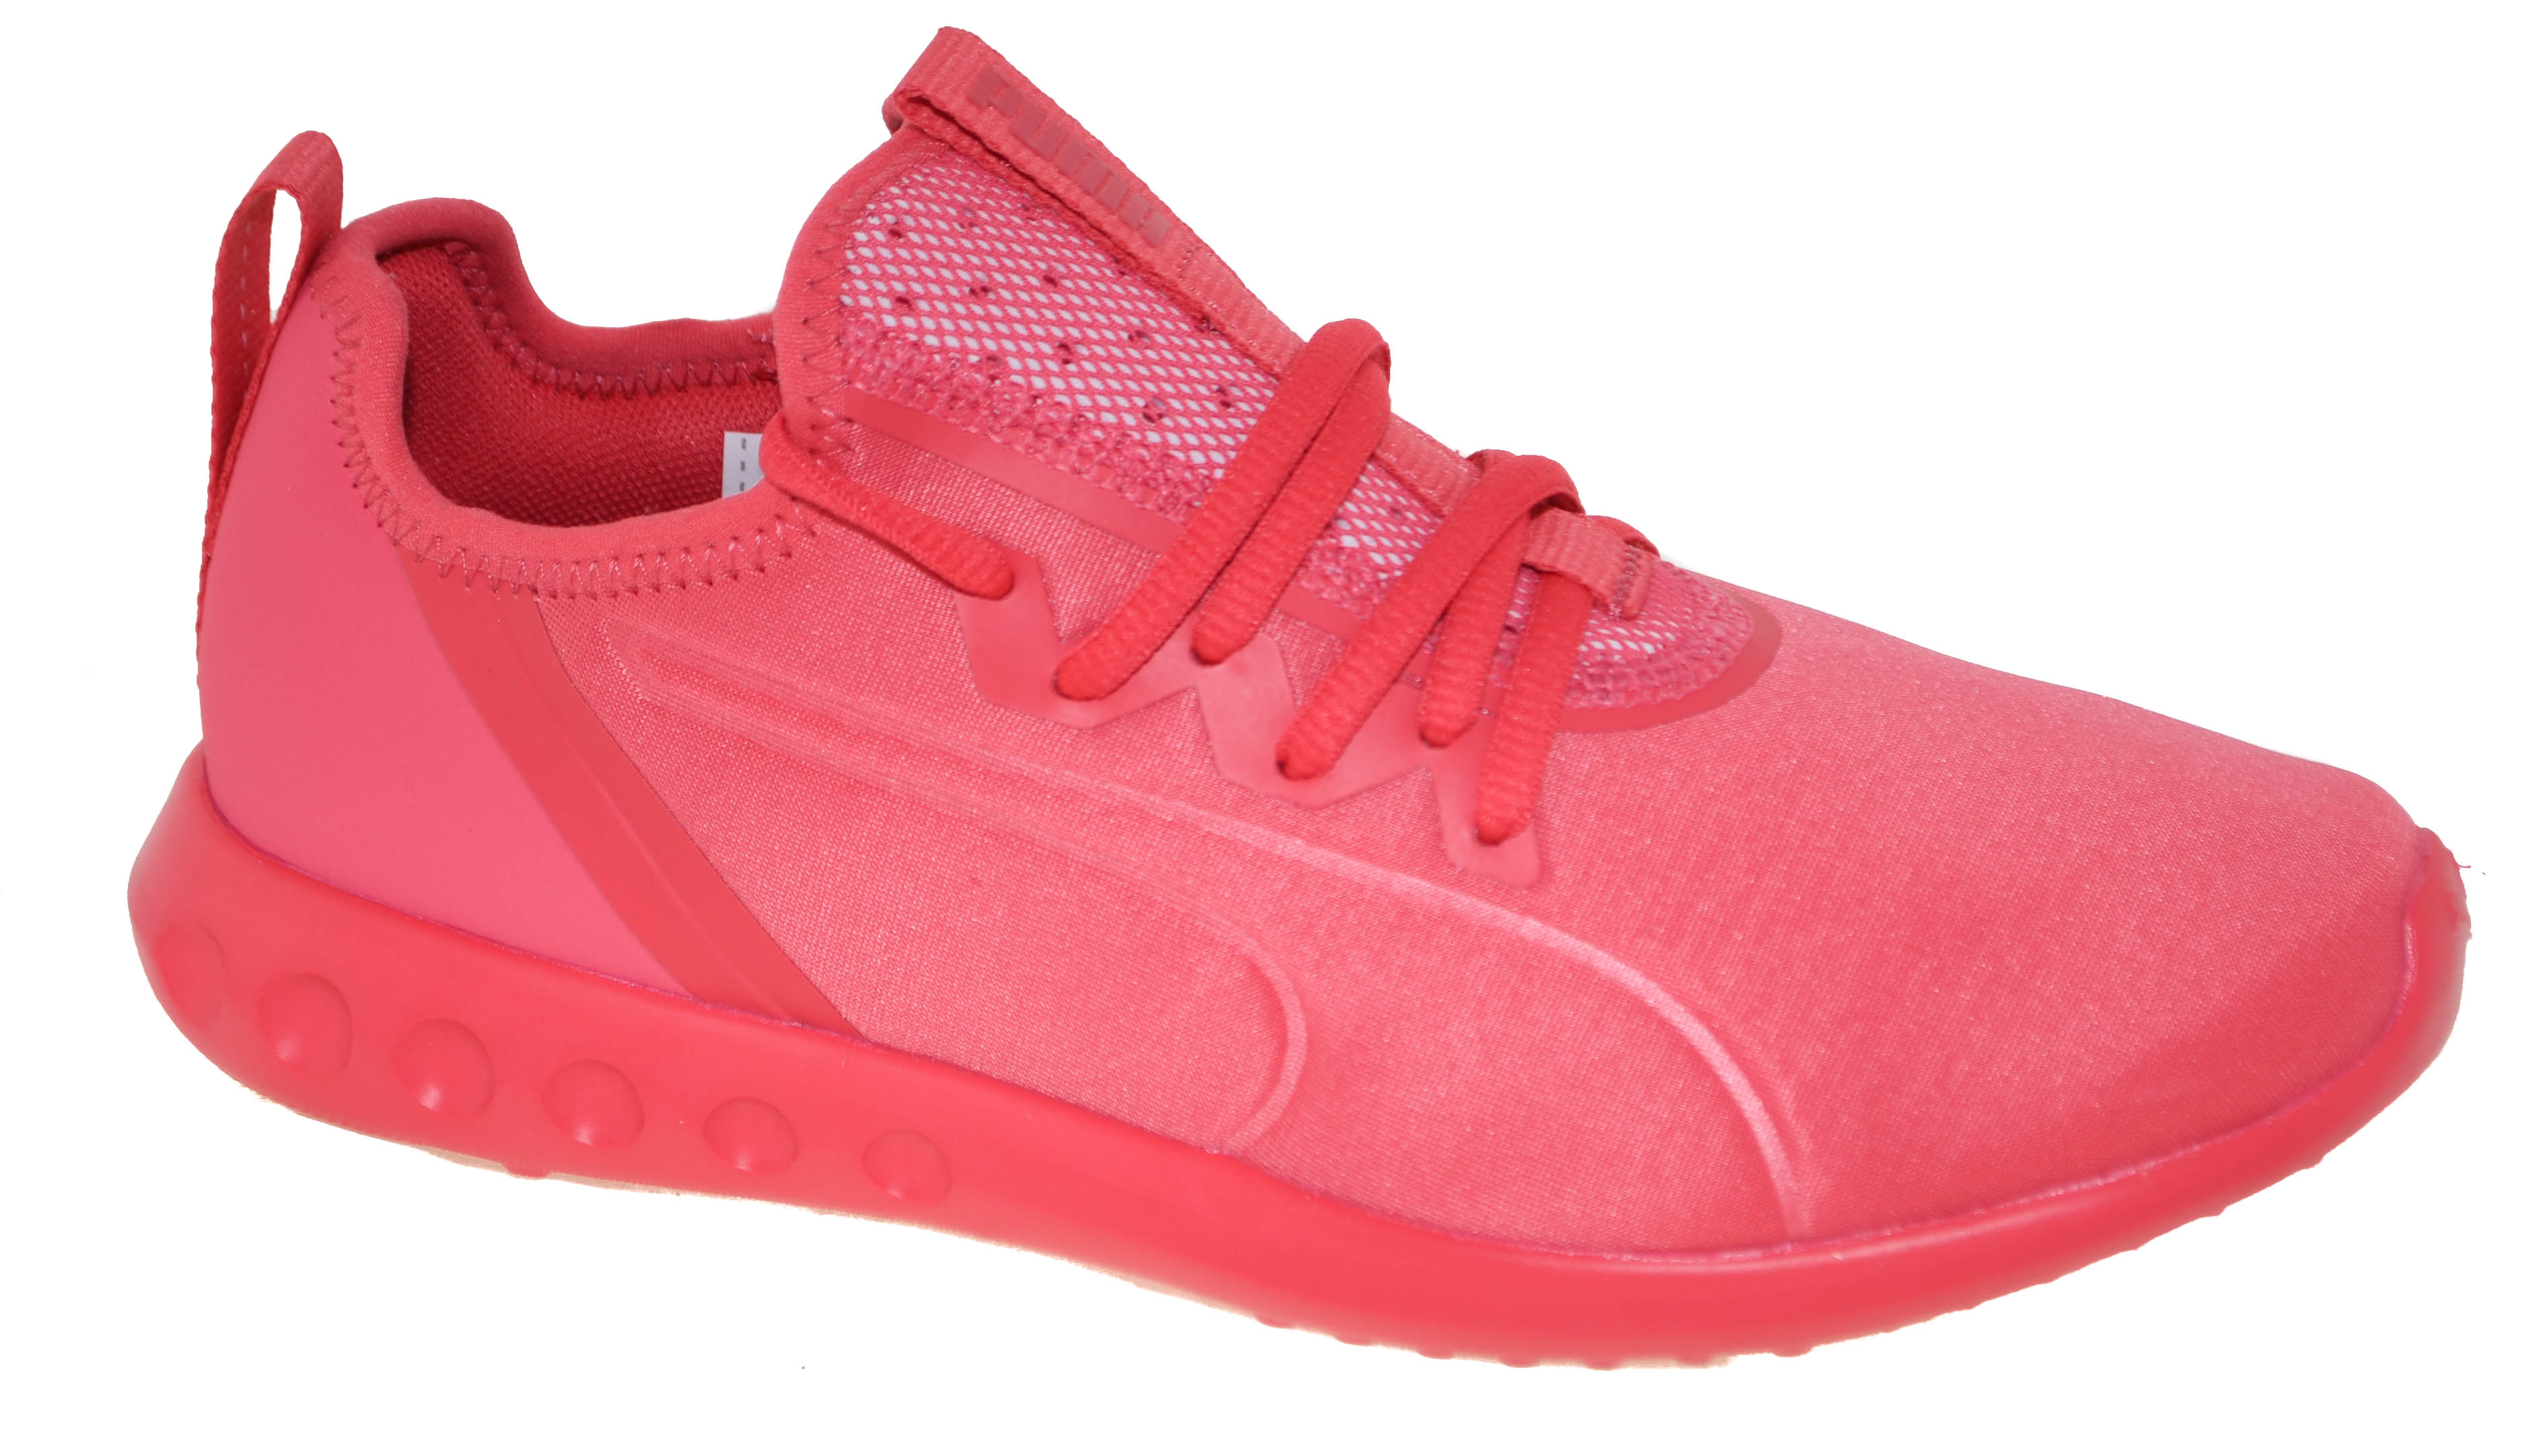 5944dbf892e0 Puma Women s Carson 2X Running Shoes Pink Style 190948-03